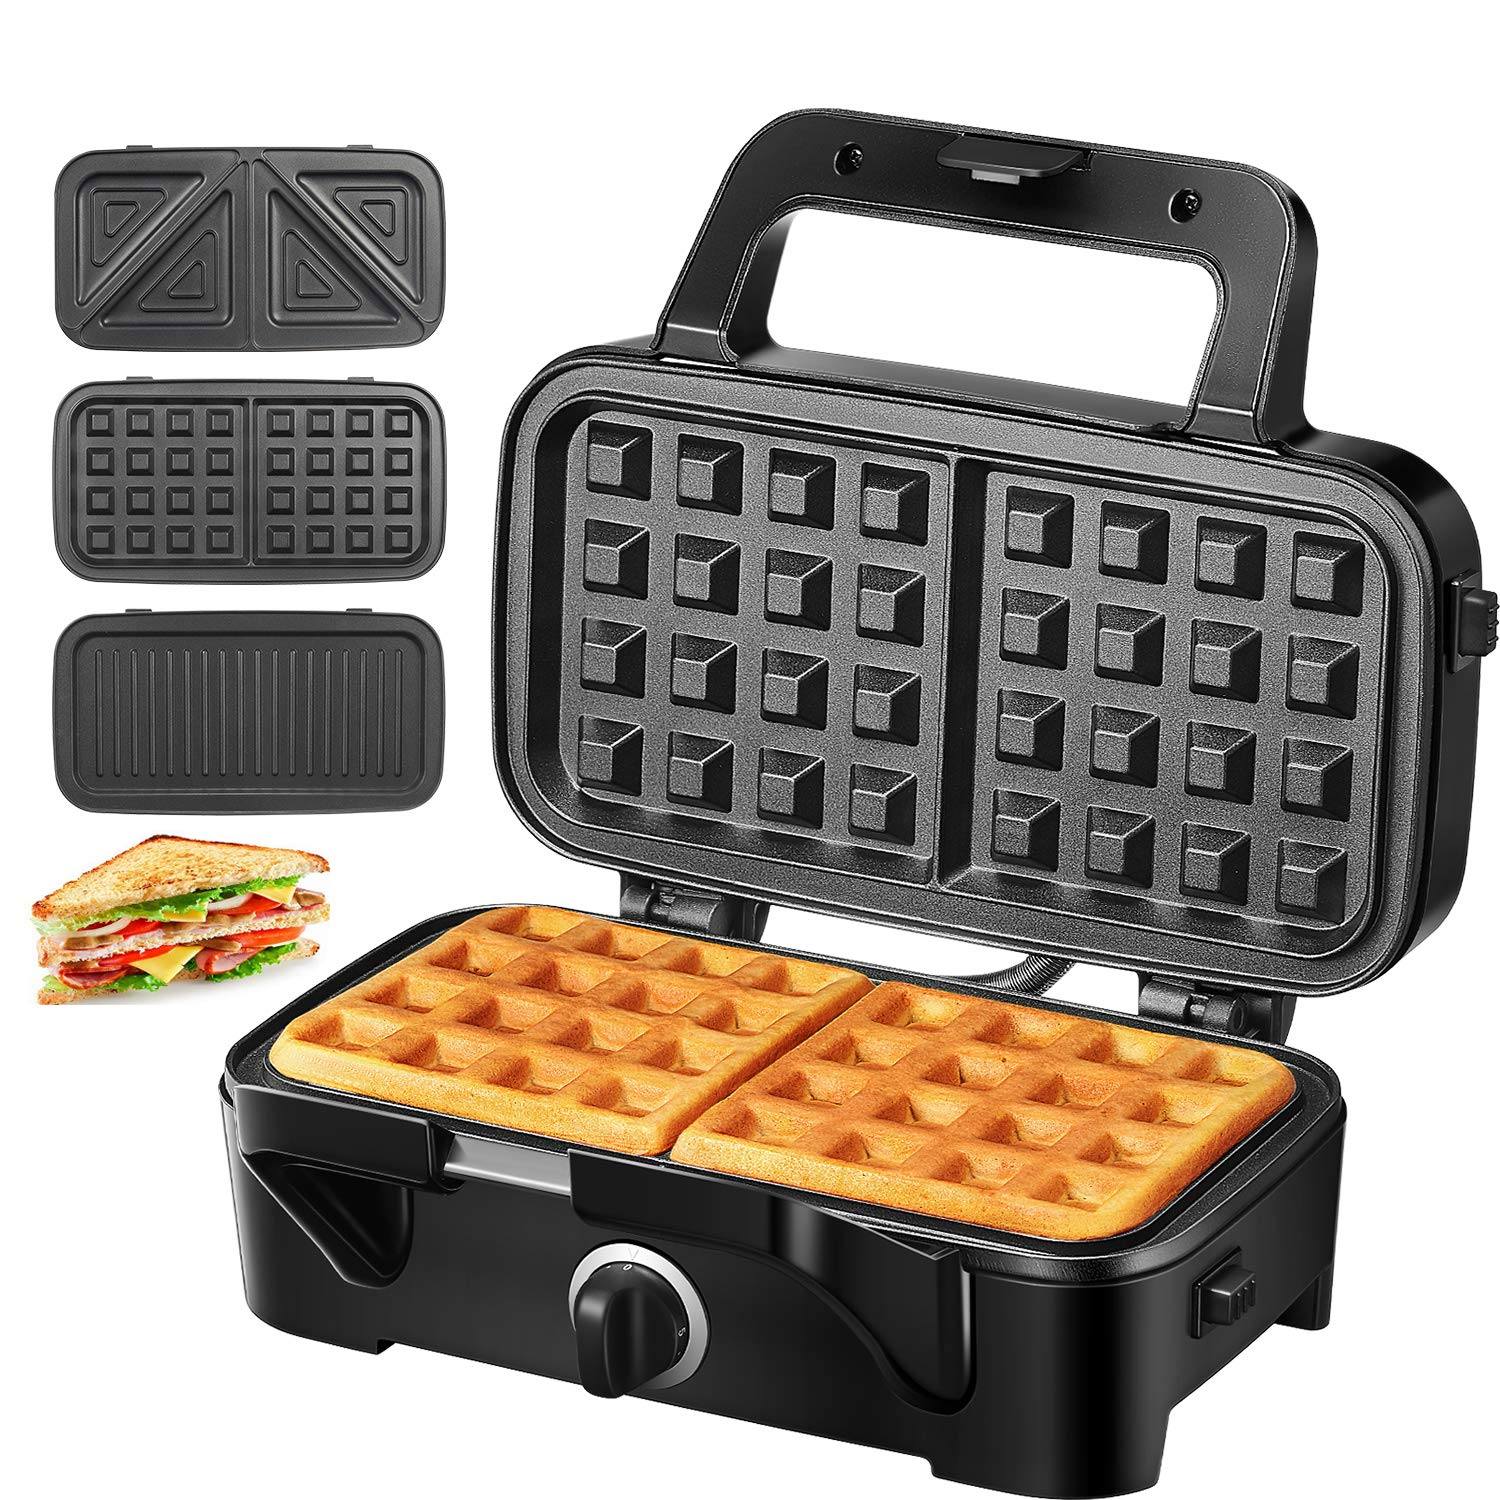 TIBEK Sandwich Maker, Waffle Maker, Sandwich Grill, 1200-Watts, Temperature Control, 3-in-1 Detachable Non-stick Coating, LED Indicator Lights, Cool Touch Handle, Anti-Skid Feet, Black by TIBEK